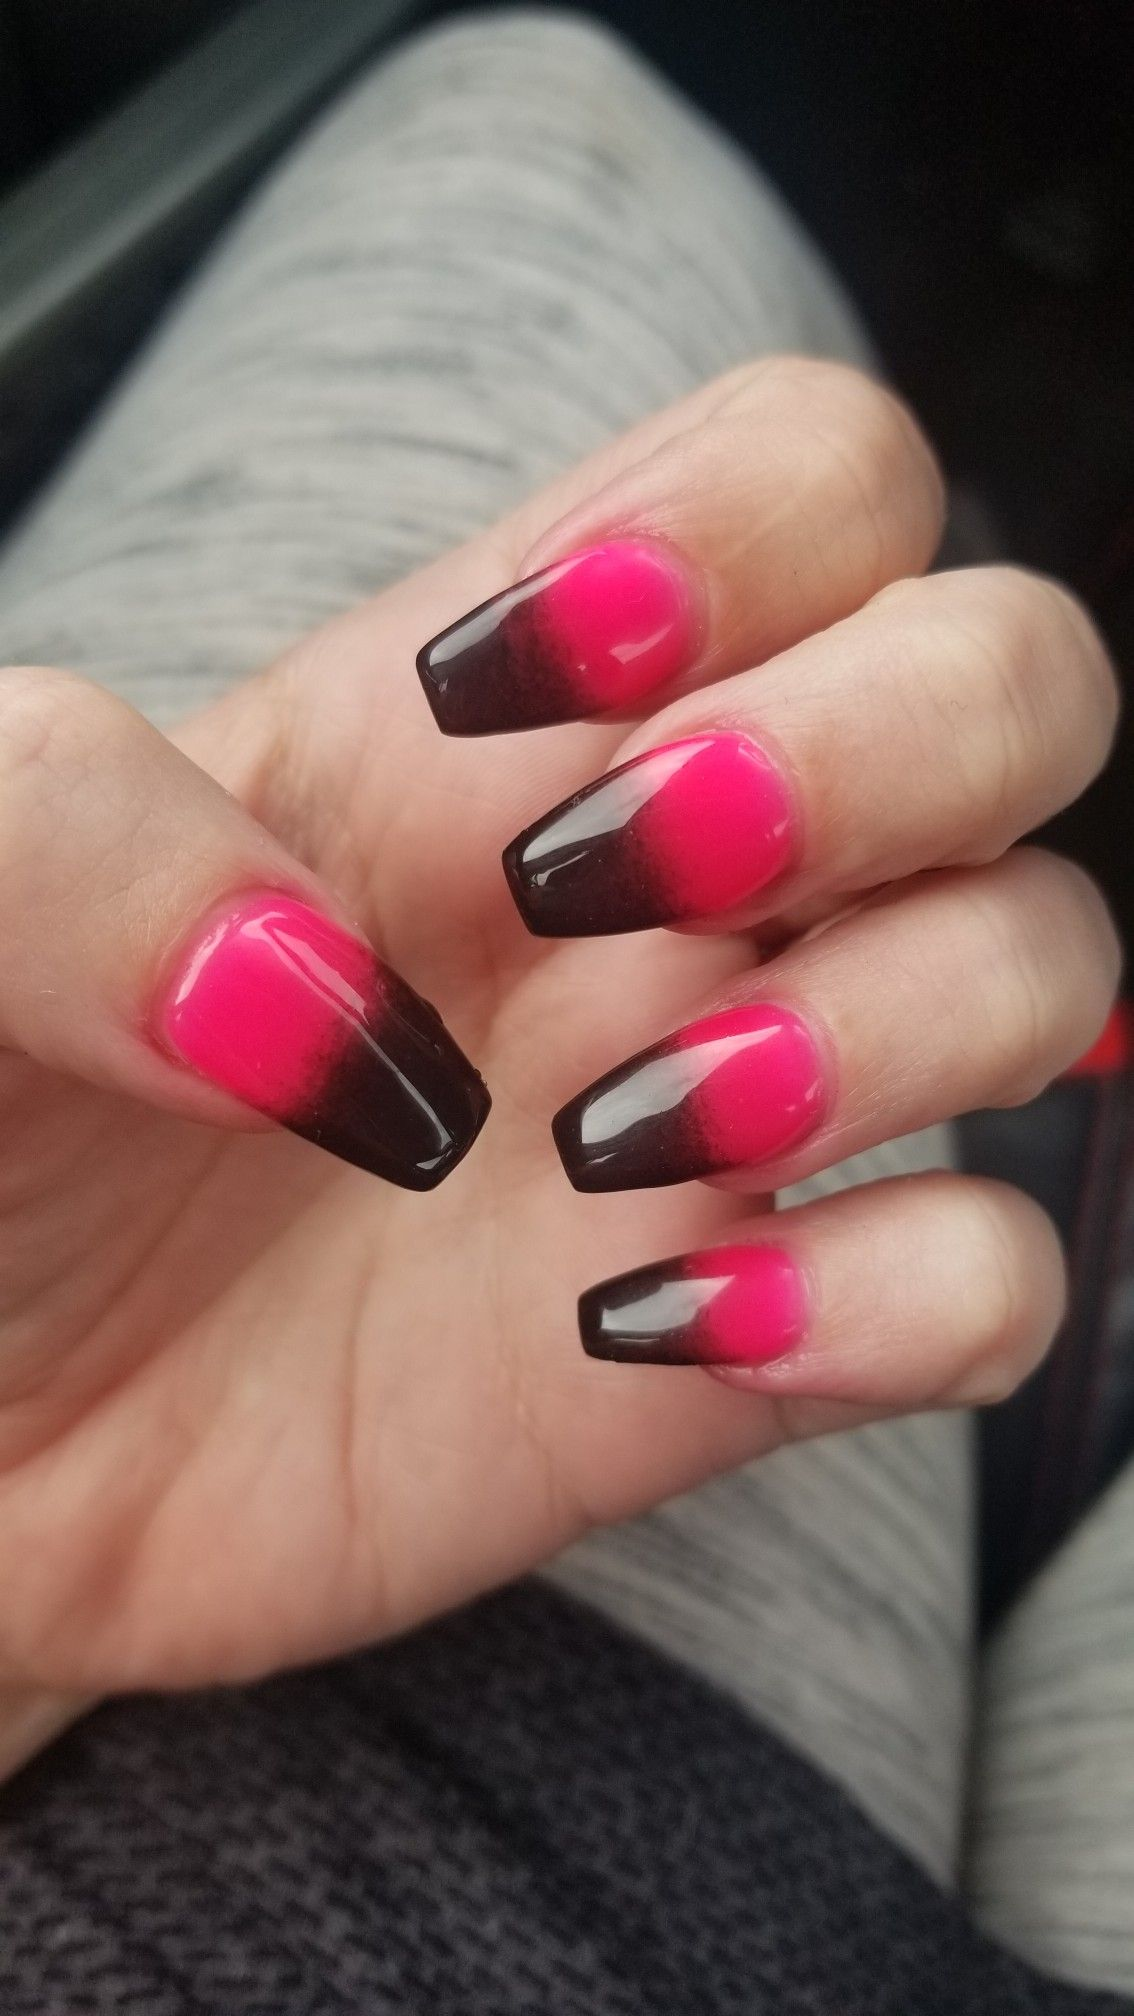 Pink And Black Ombre Nails Dip Polish Black Ombre Nails Ombre Nails Nails